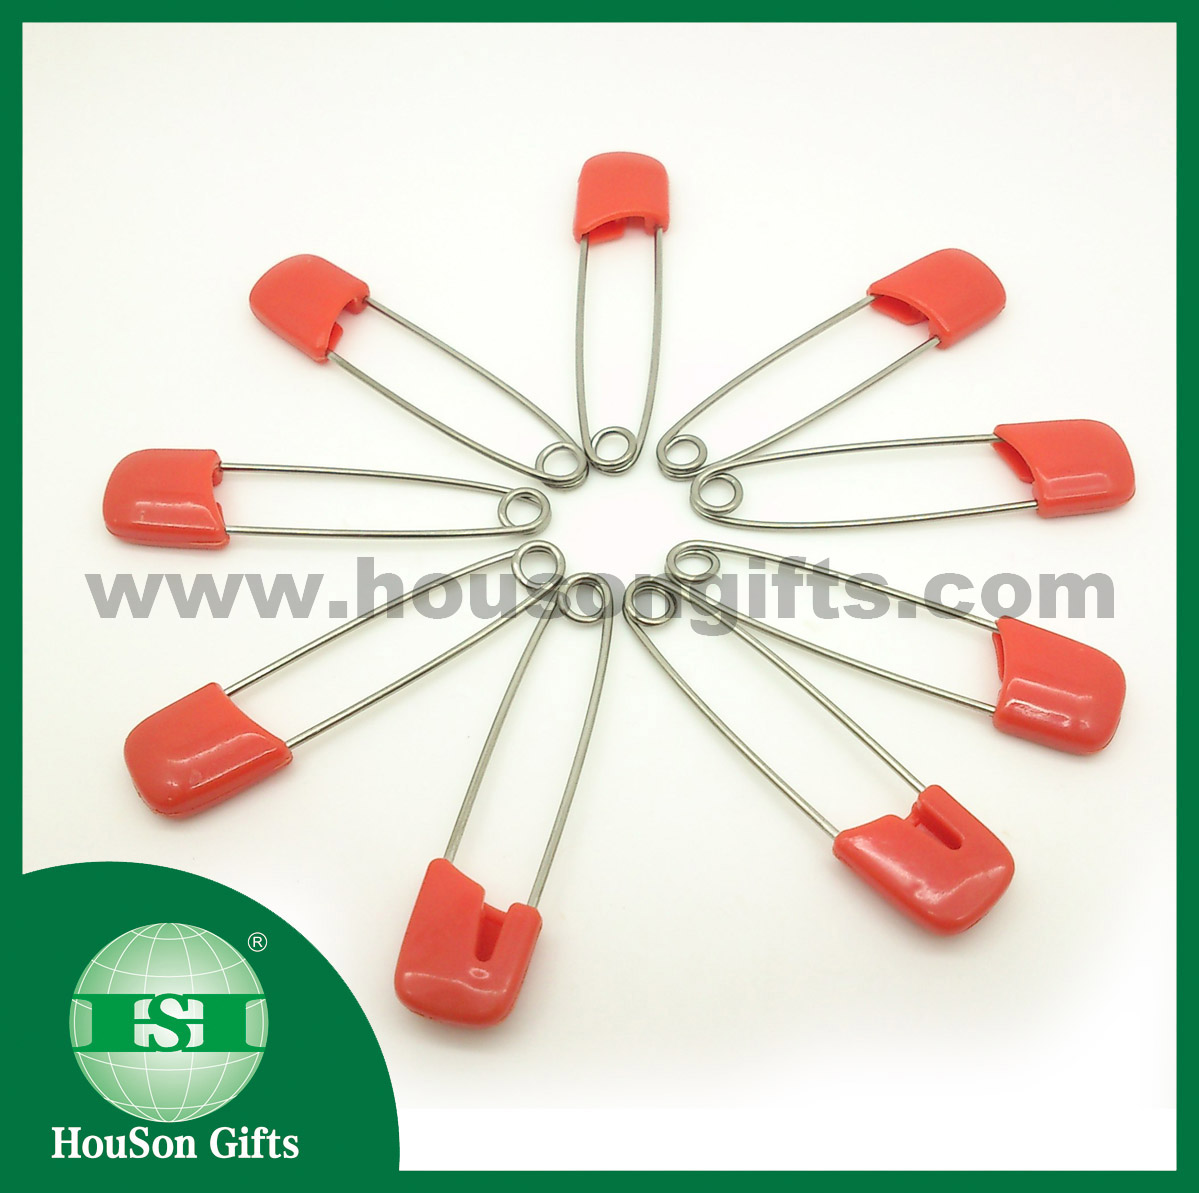 Stainless steel safety pins